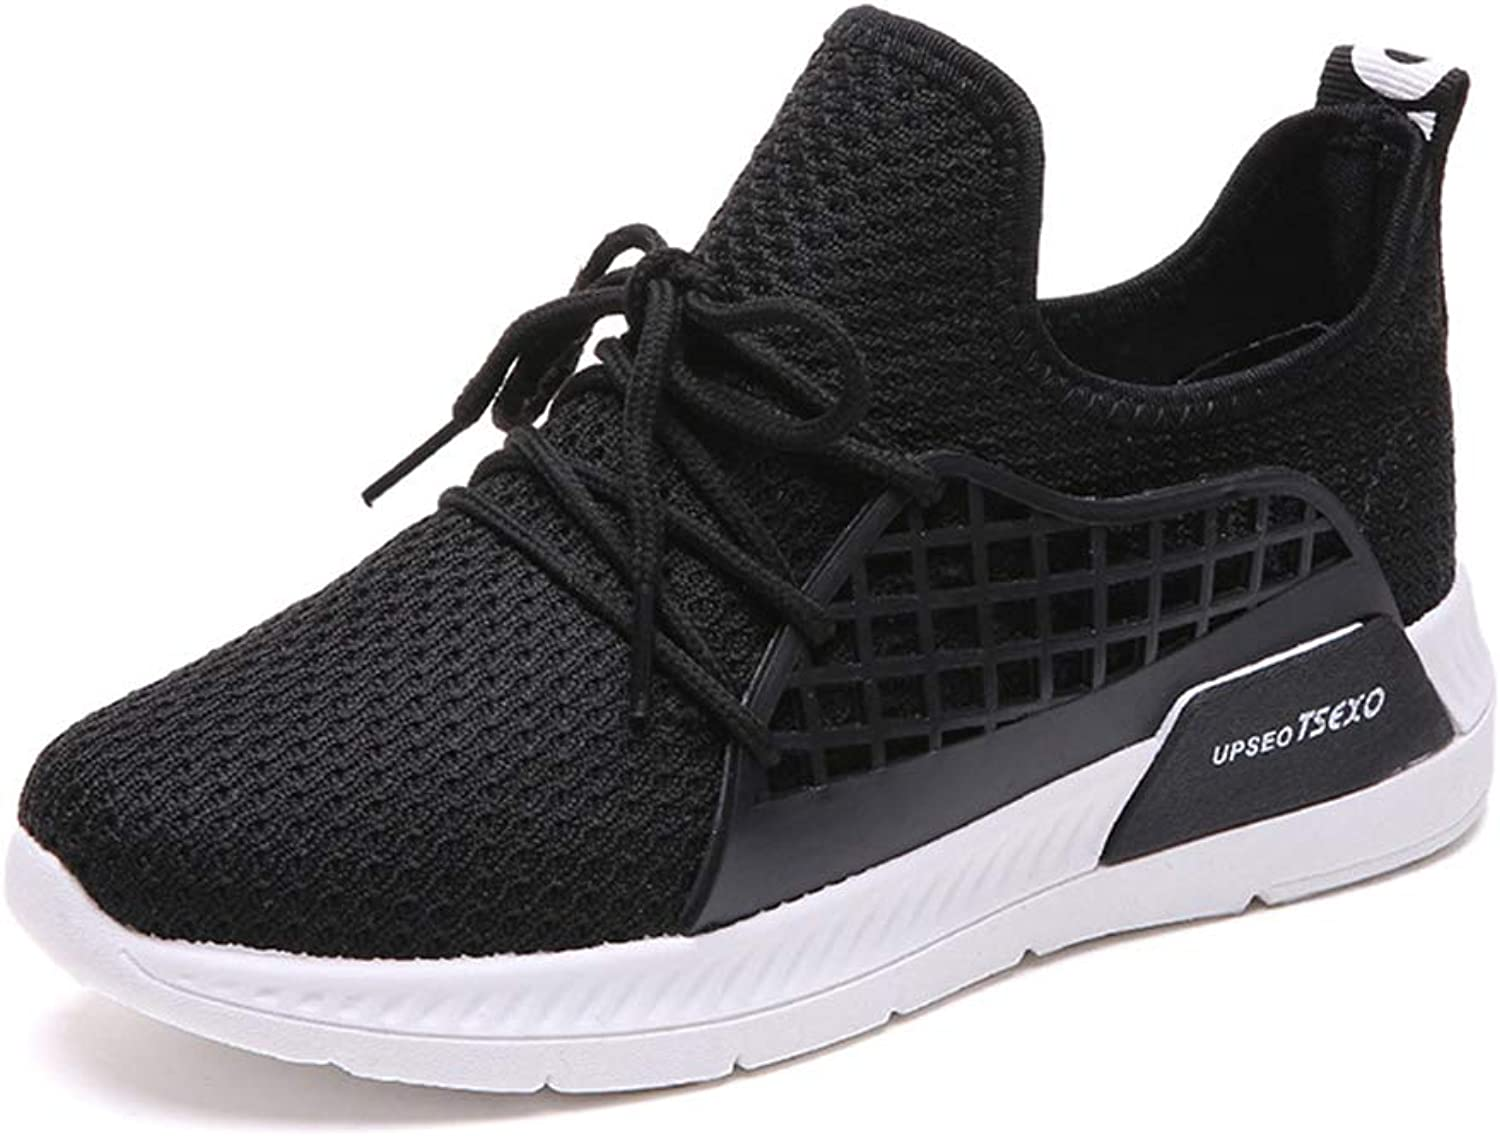 ProDIgal Women's Running shoes Lightweight Slip-On Breathable Mesh Work Sneakers Athletic Sports Walking